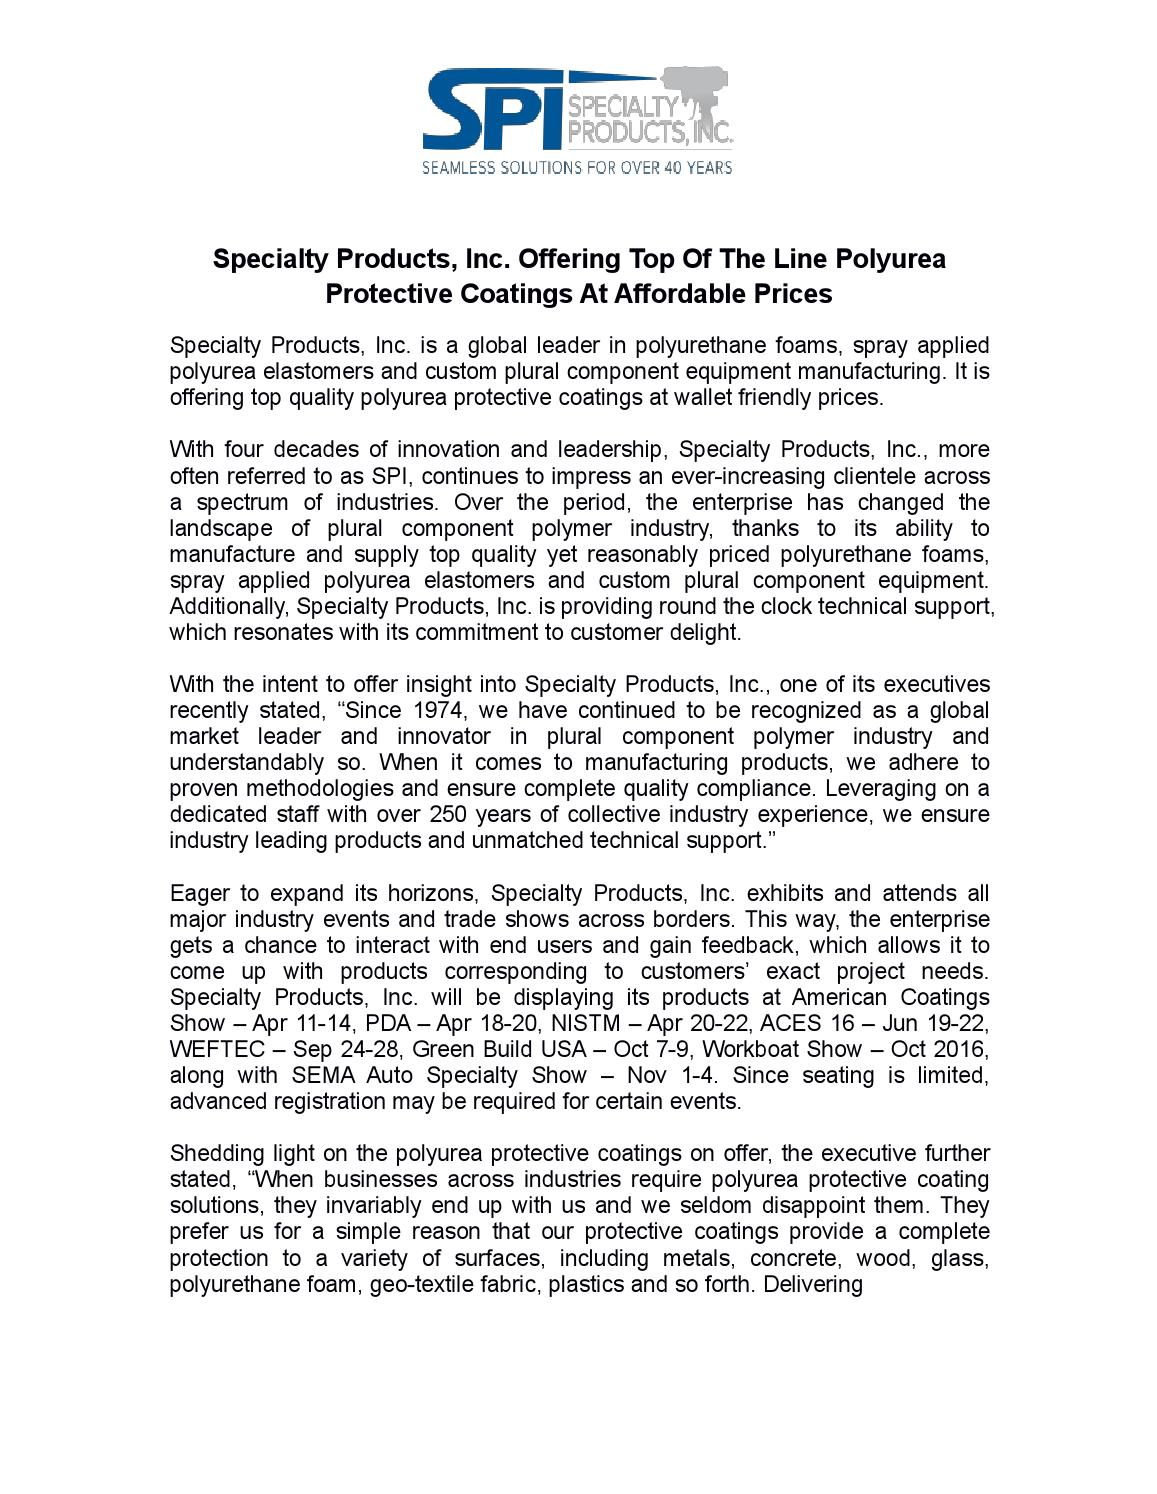 Specialty products, inc offering top of the line polyurea